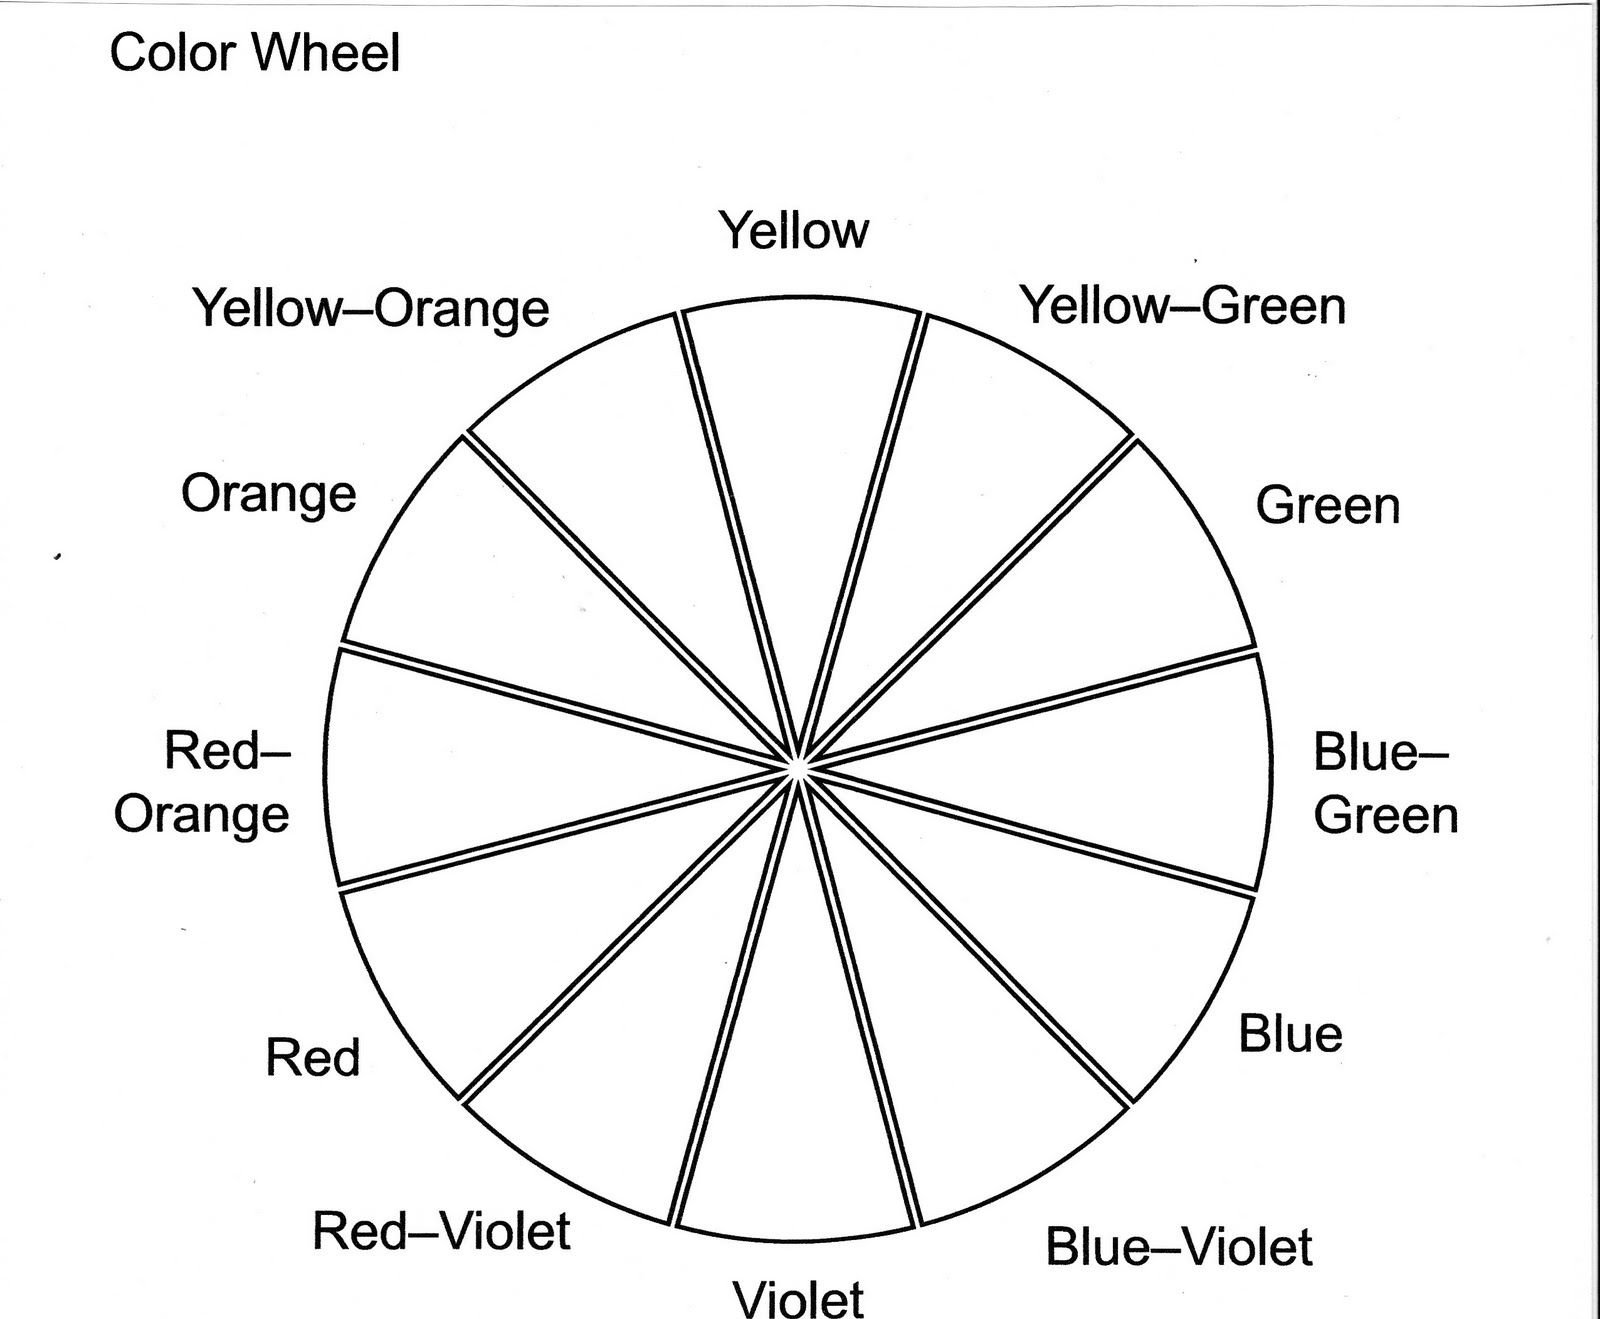 picture about Color Wheel Printable titled Shade Wheel Worksheet Printable Existence Competencies within just 2019